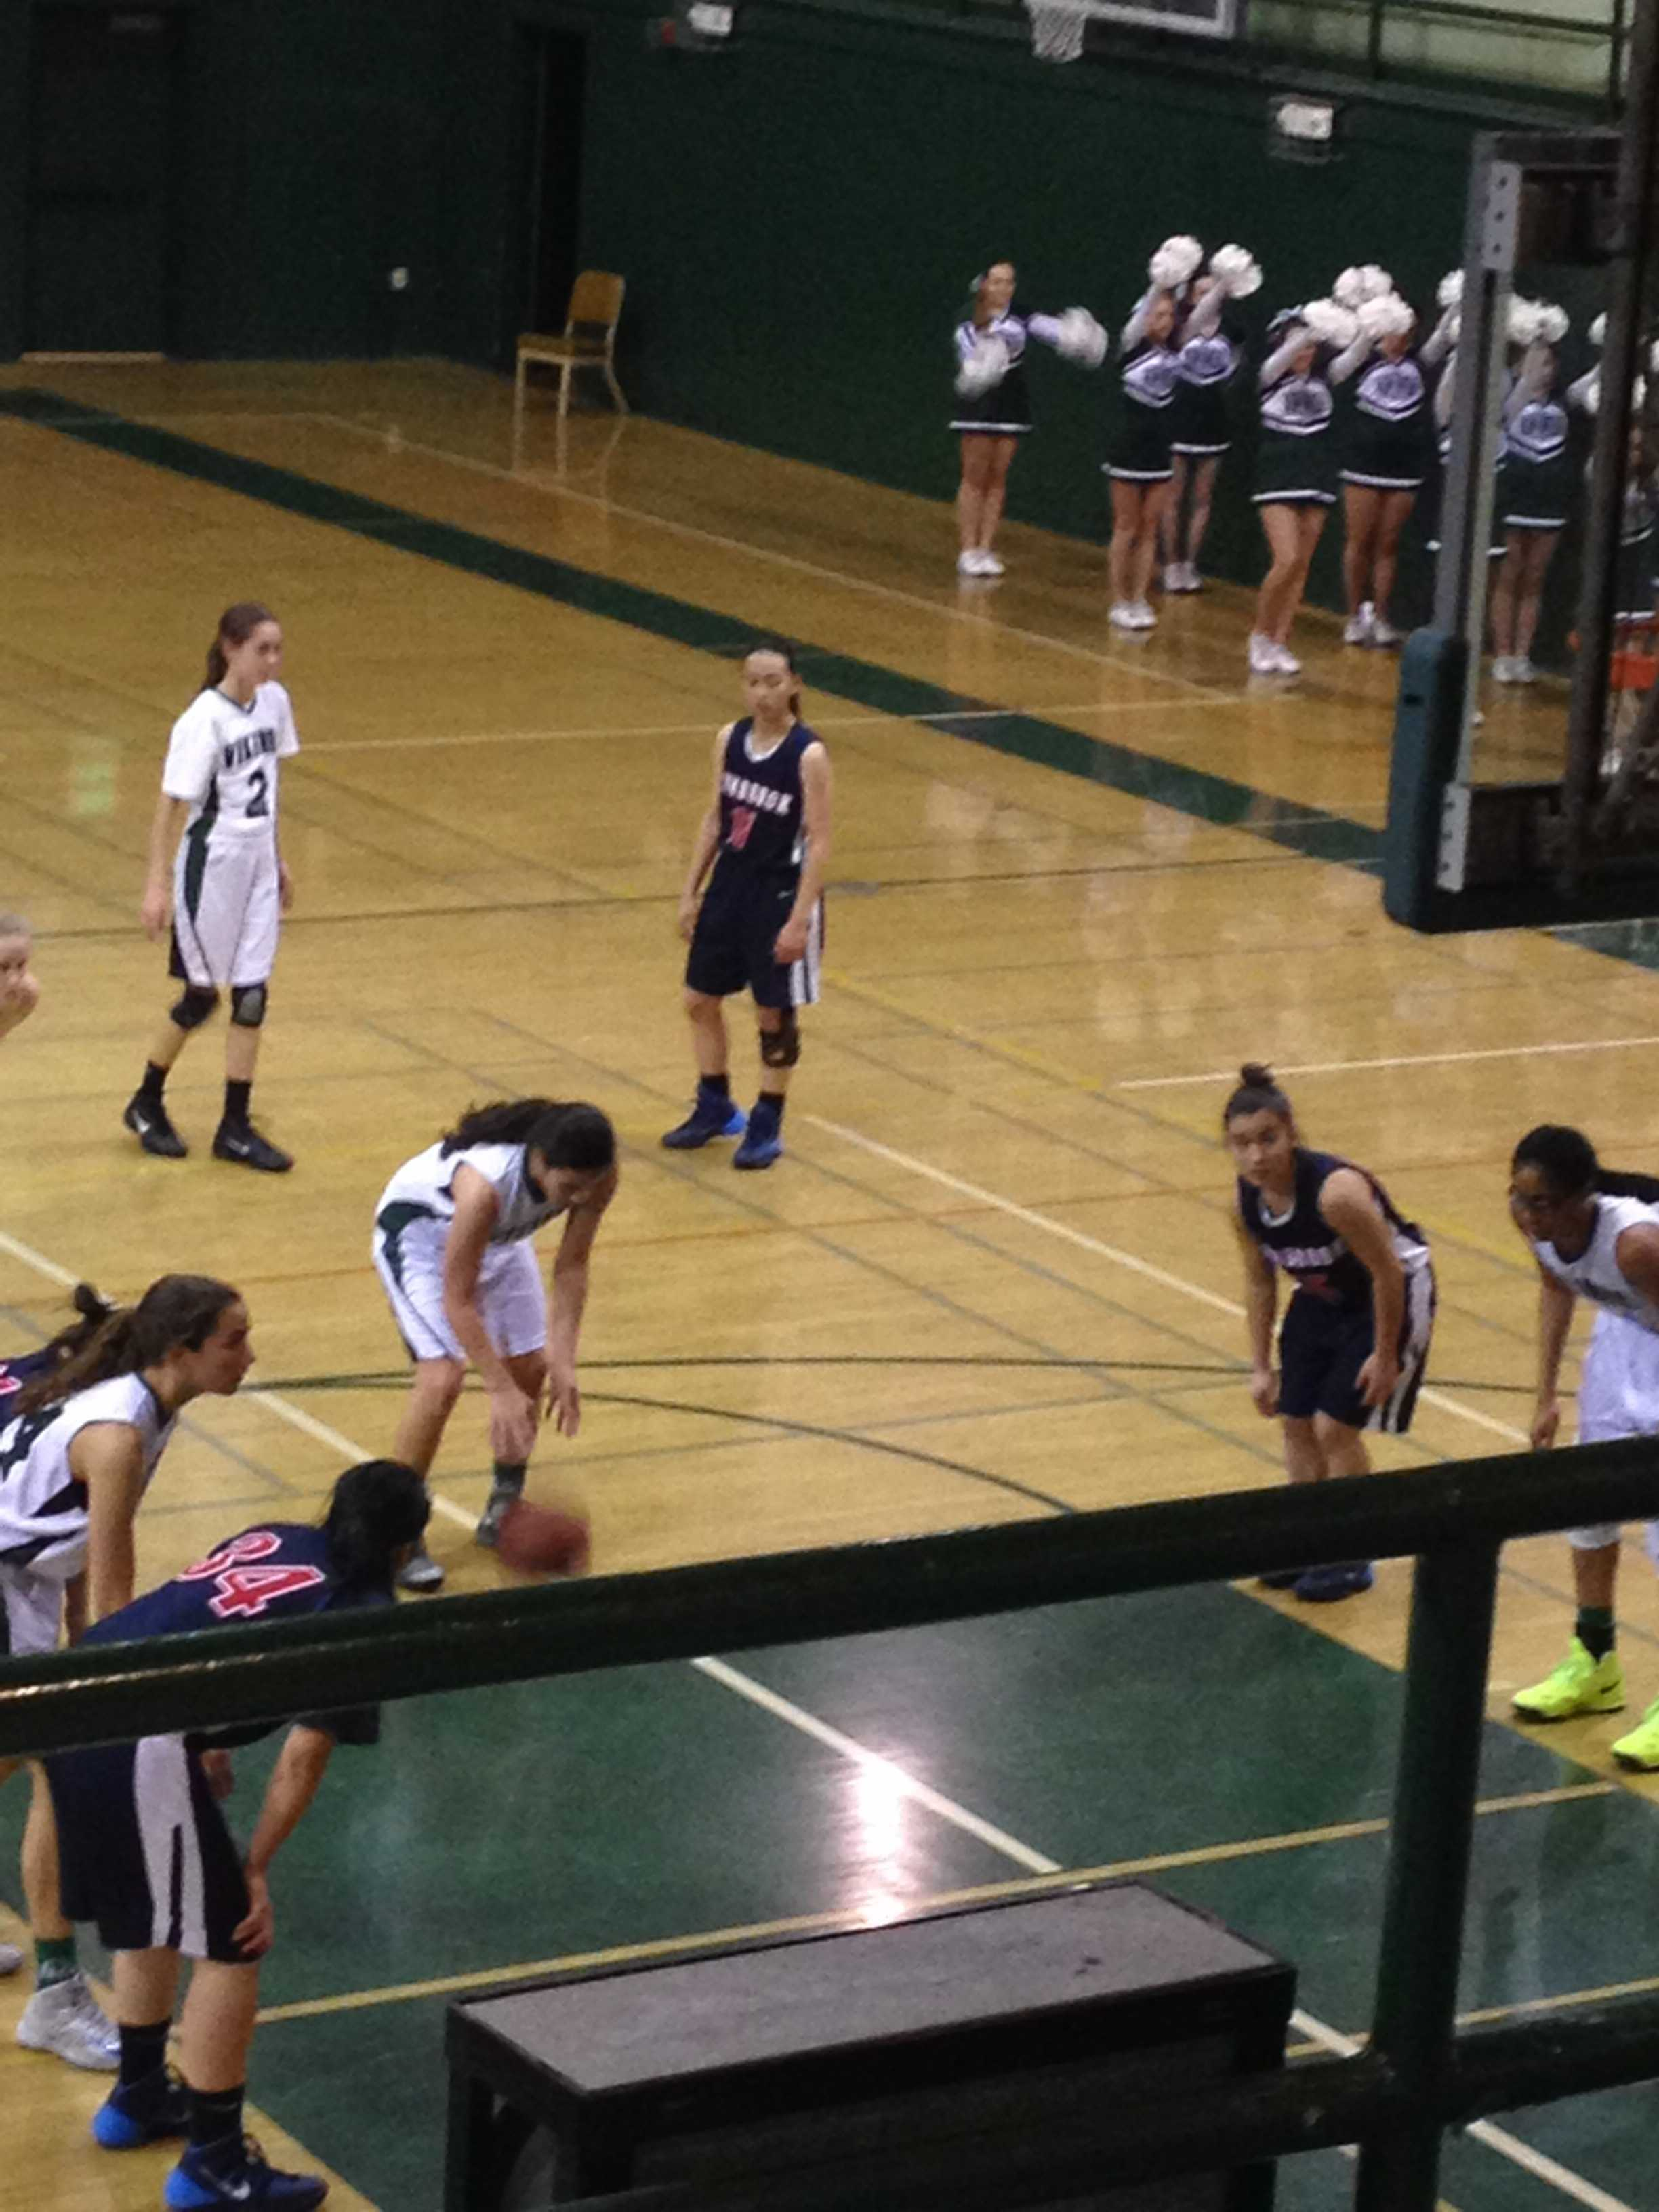 Lauren Koyama ('17) shoots a free throw during the game against Lynbrook.  The Vikings lost 42-30.